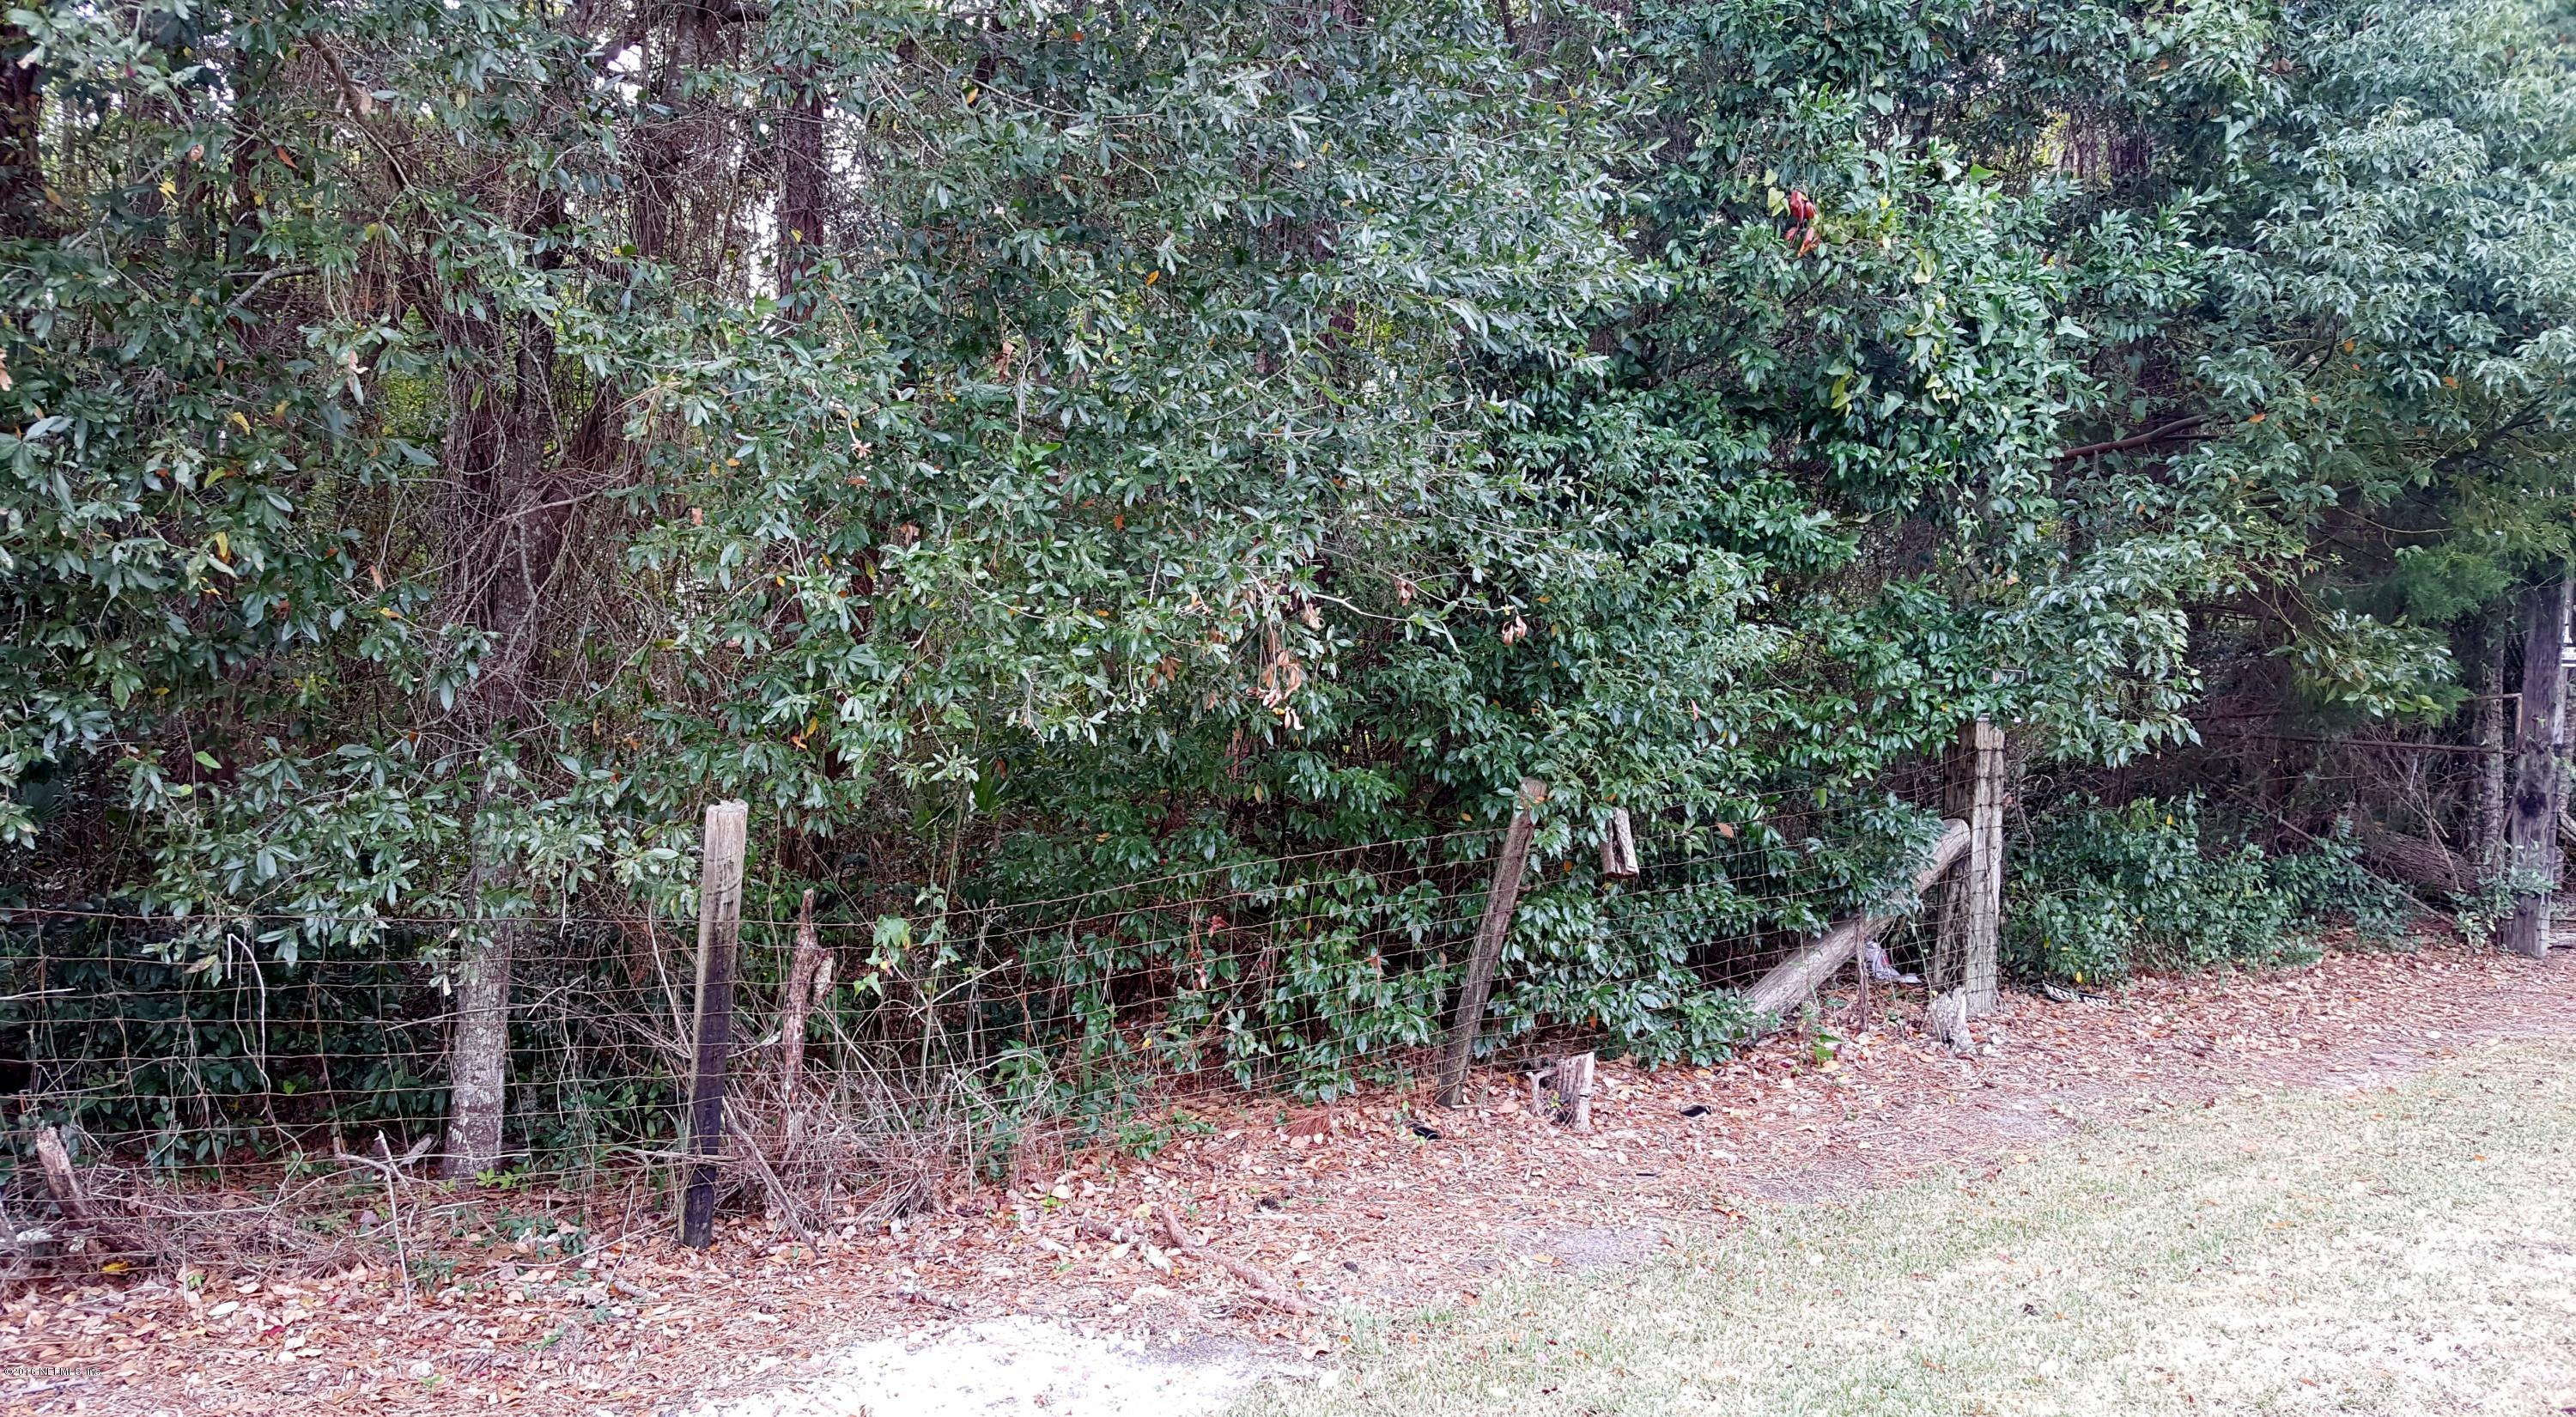 0000 WILSON, LAKE CITY, FLORIDA 32055, ,Vacant land,For sale,WILSON,854259